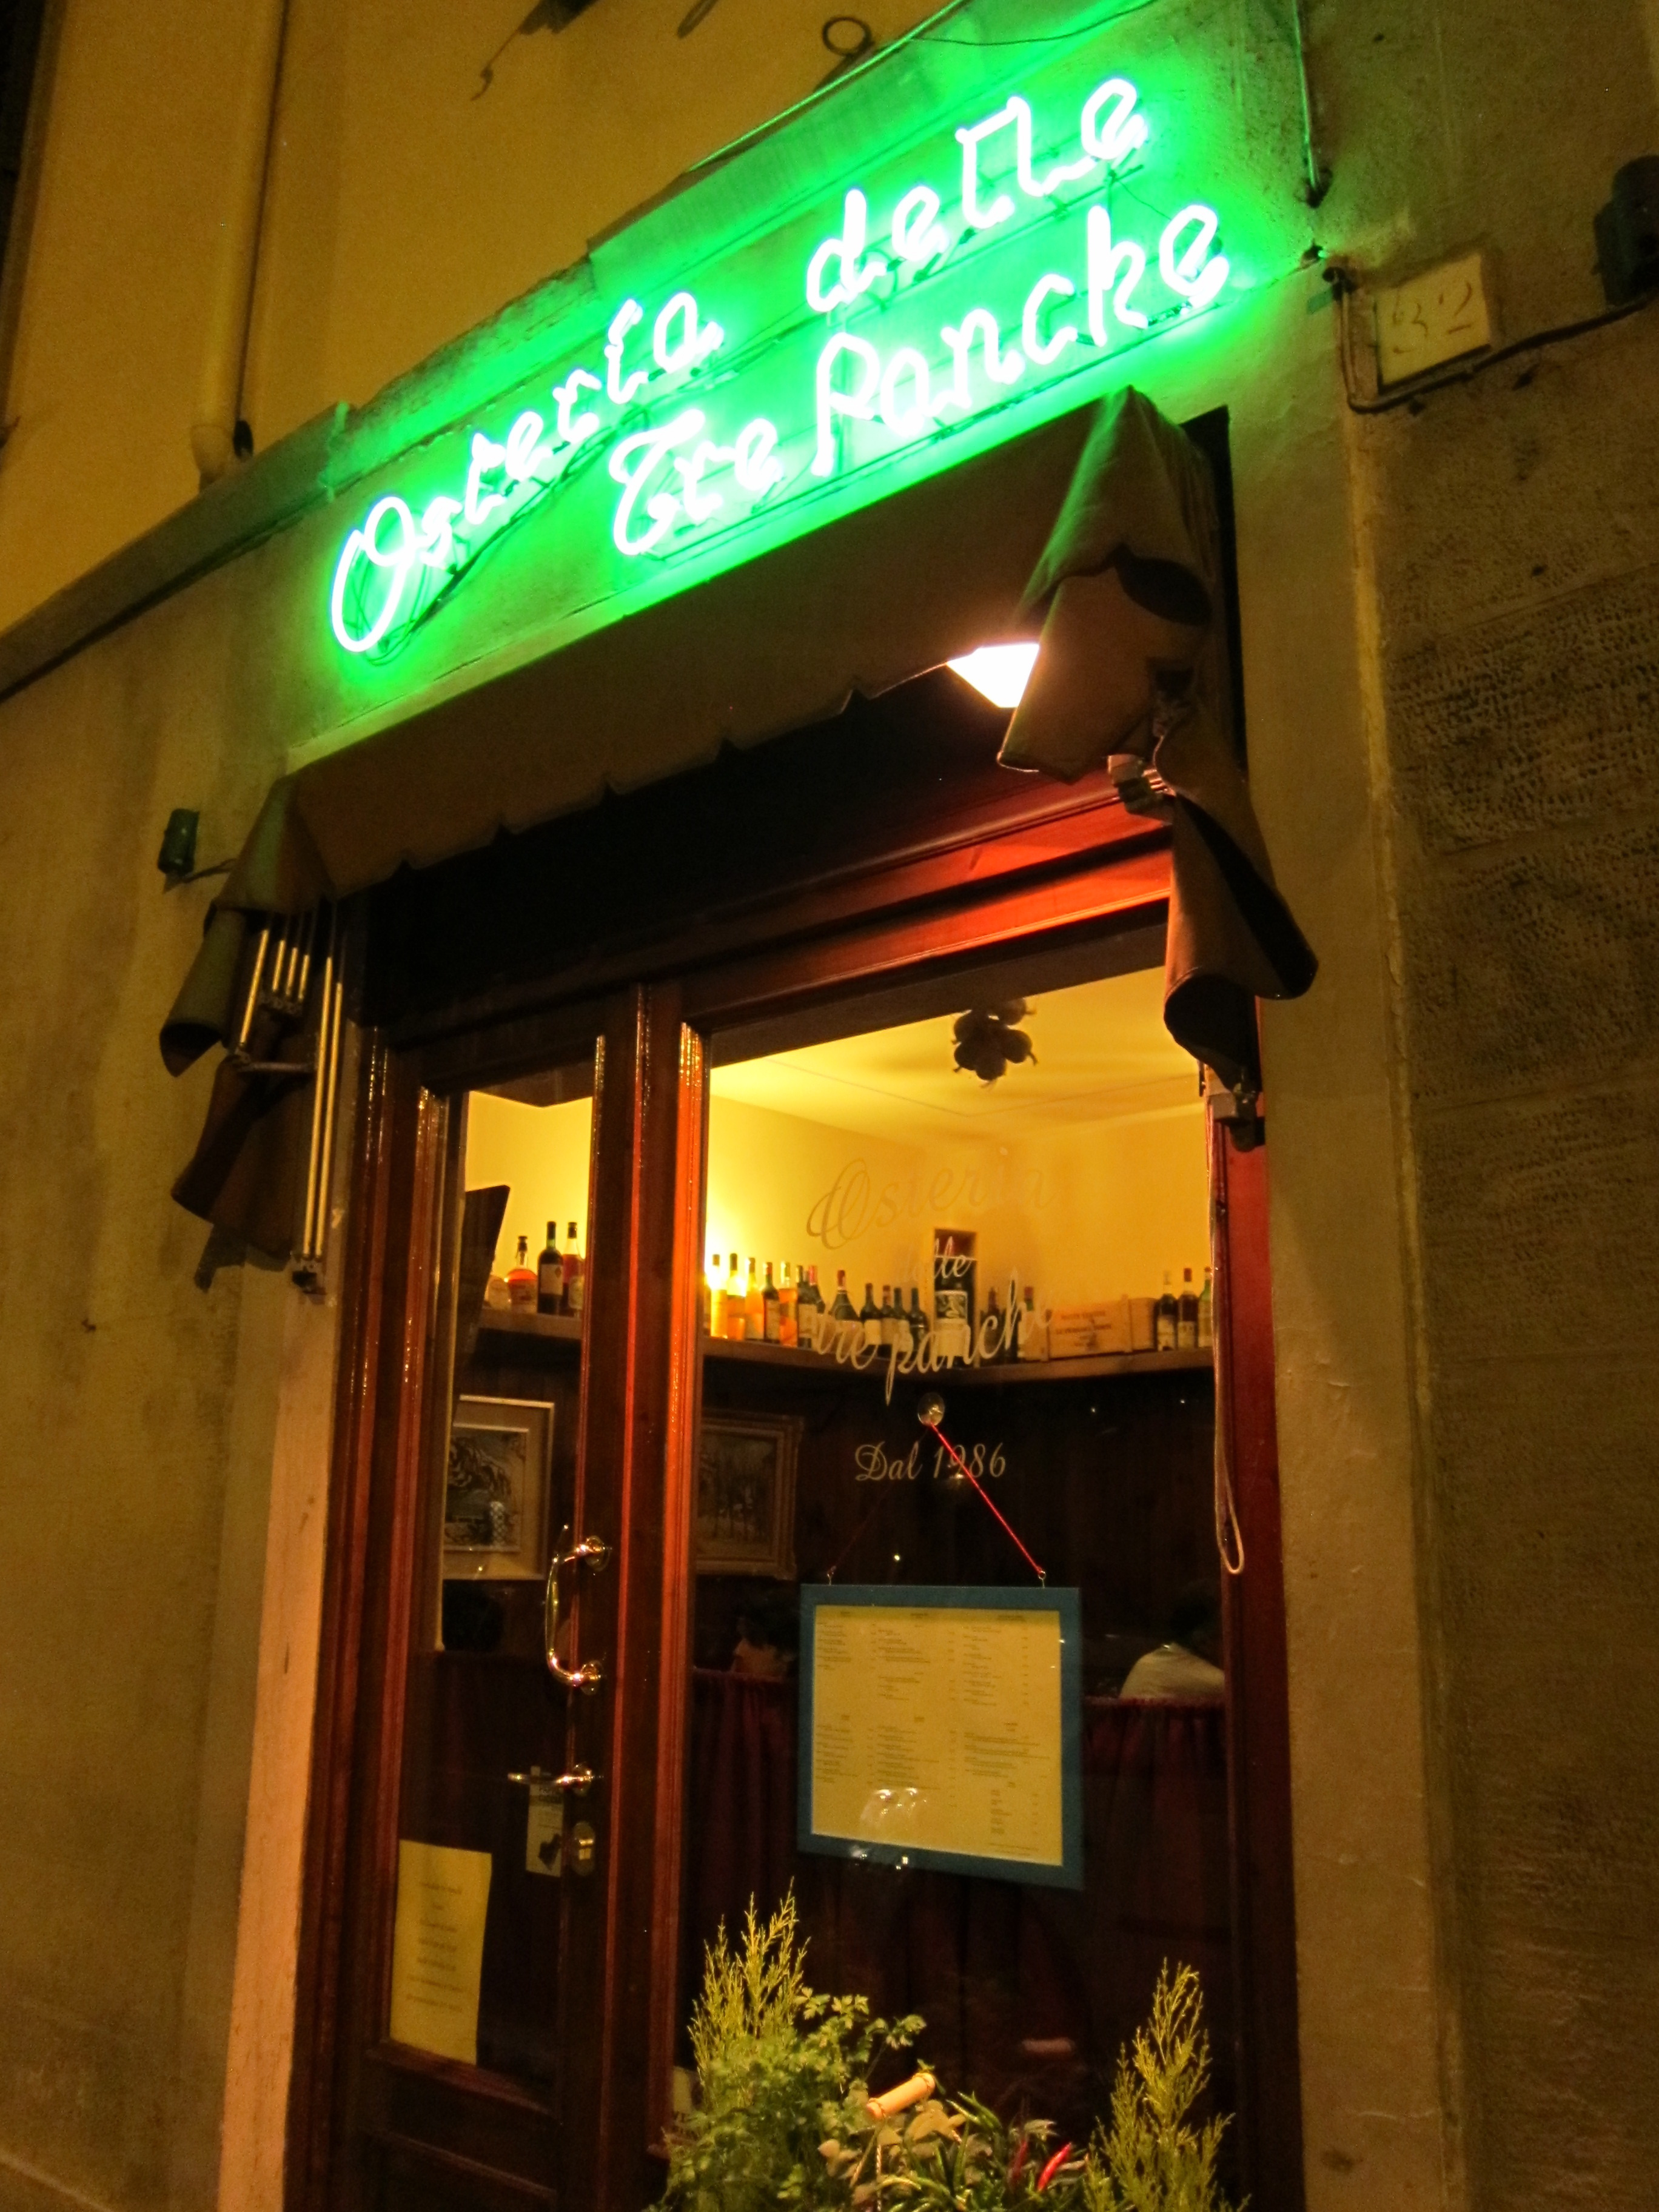 Tre Panche Florence Menu.Osteria Delle Tre Panche Florence Italy The Good Eater